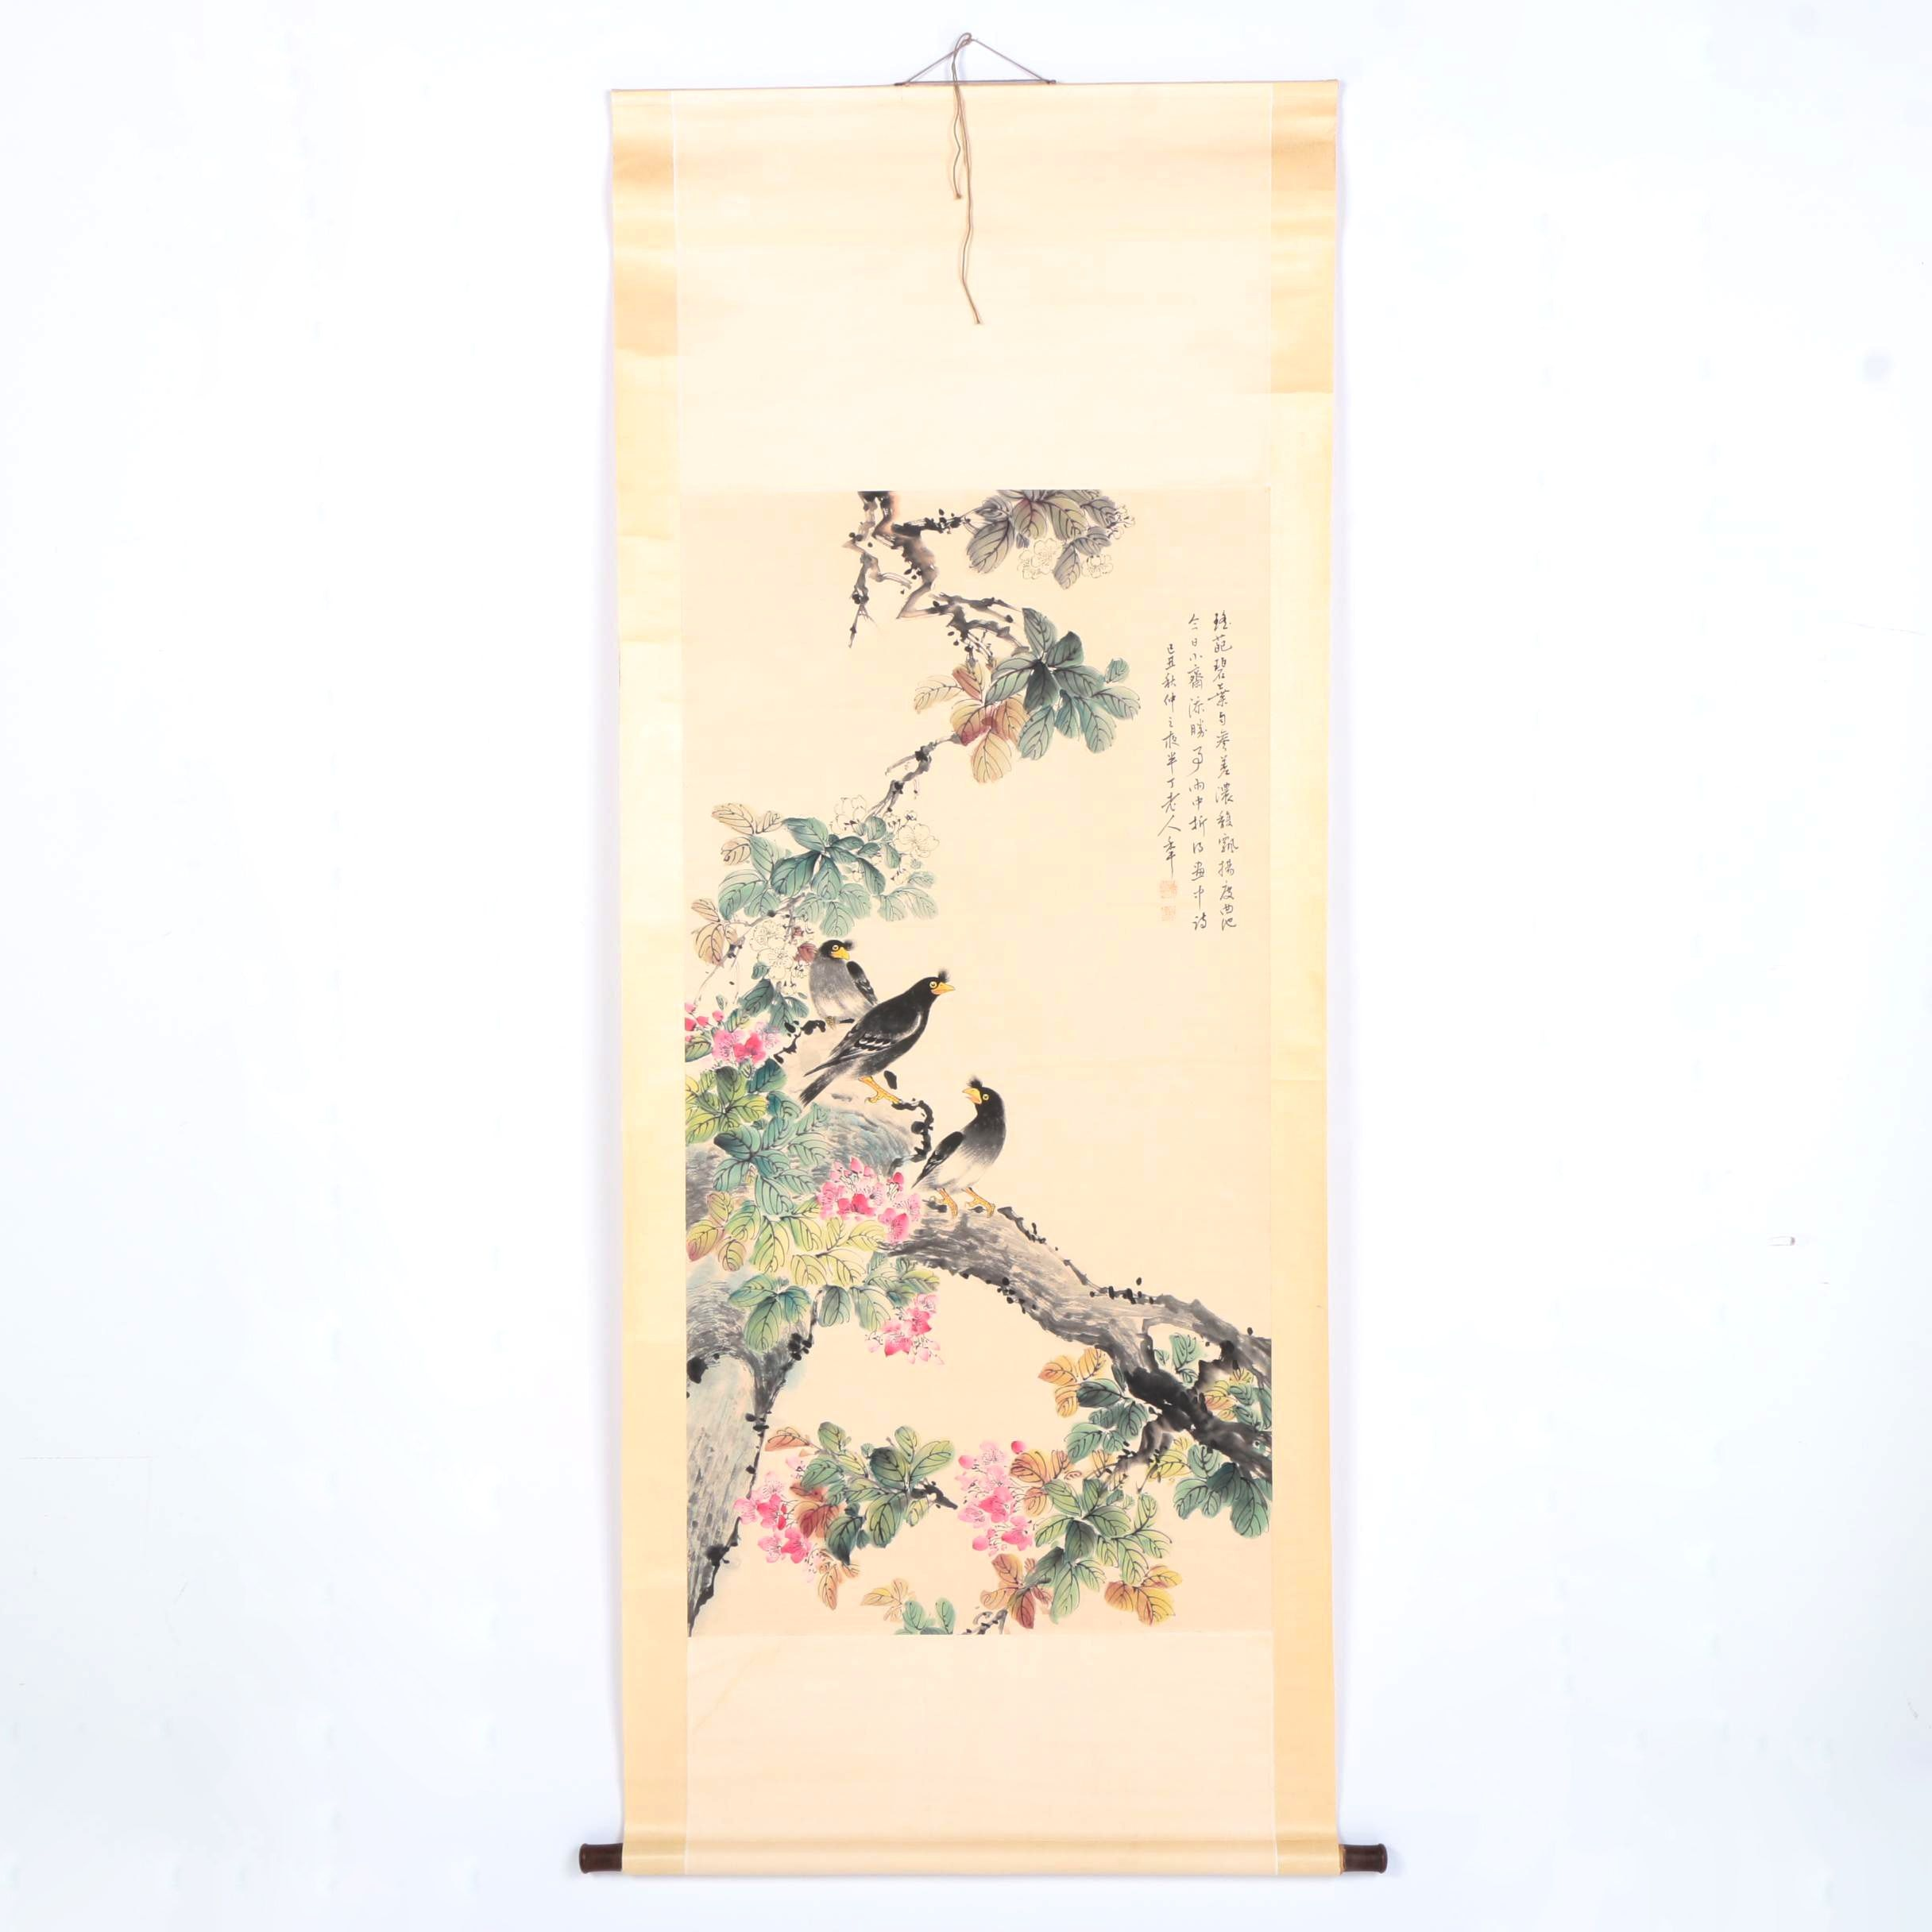 East Asian Ink and Watercolor Scroll of Birds on a Branch